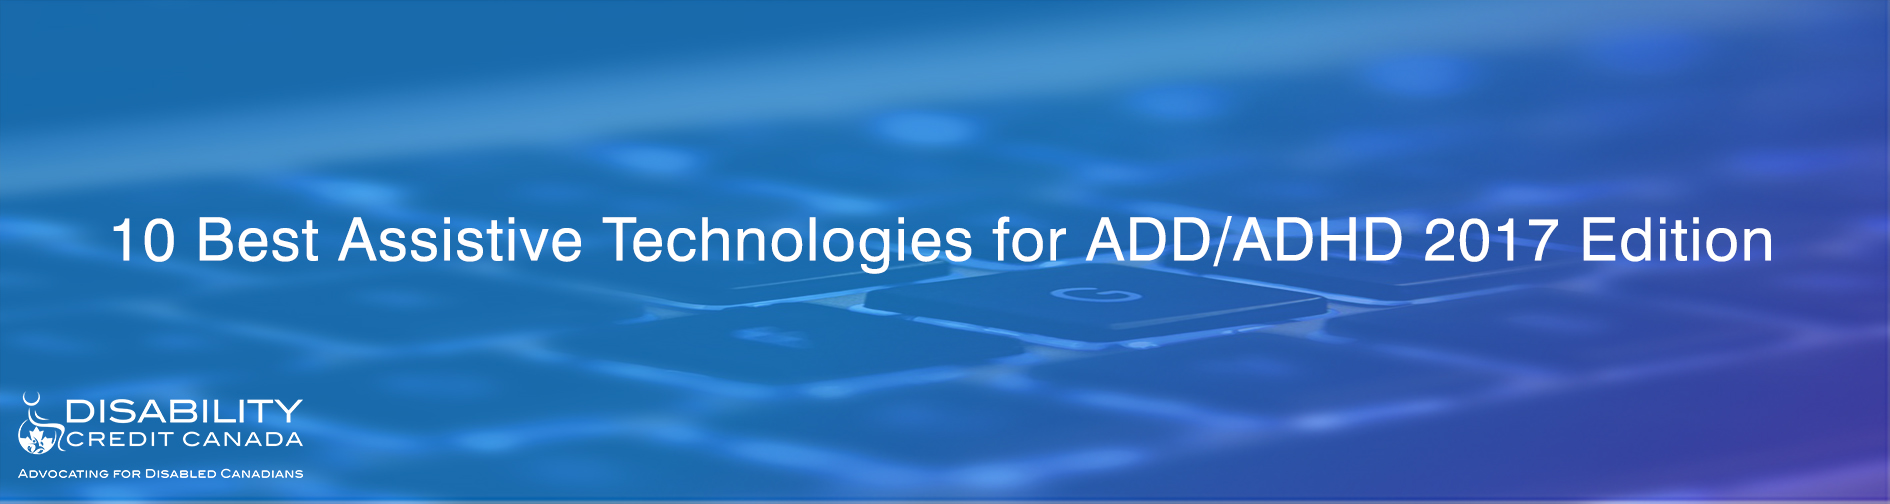 10 Best Assistive Technologies for ADD/ADHD